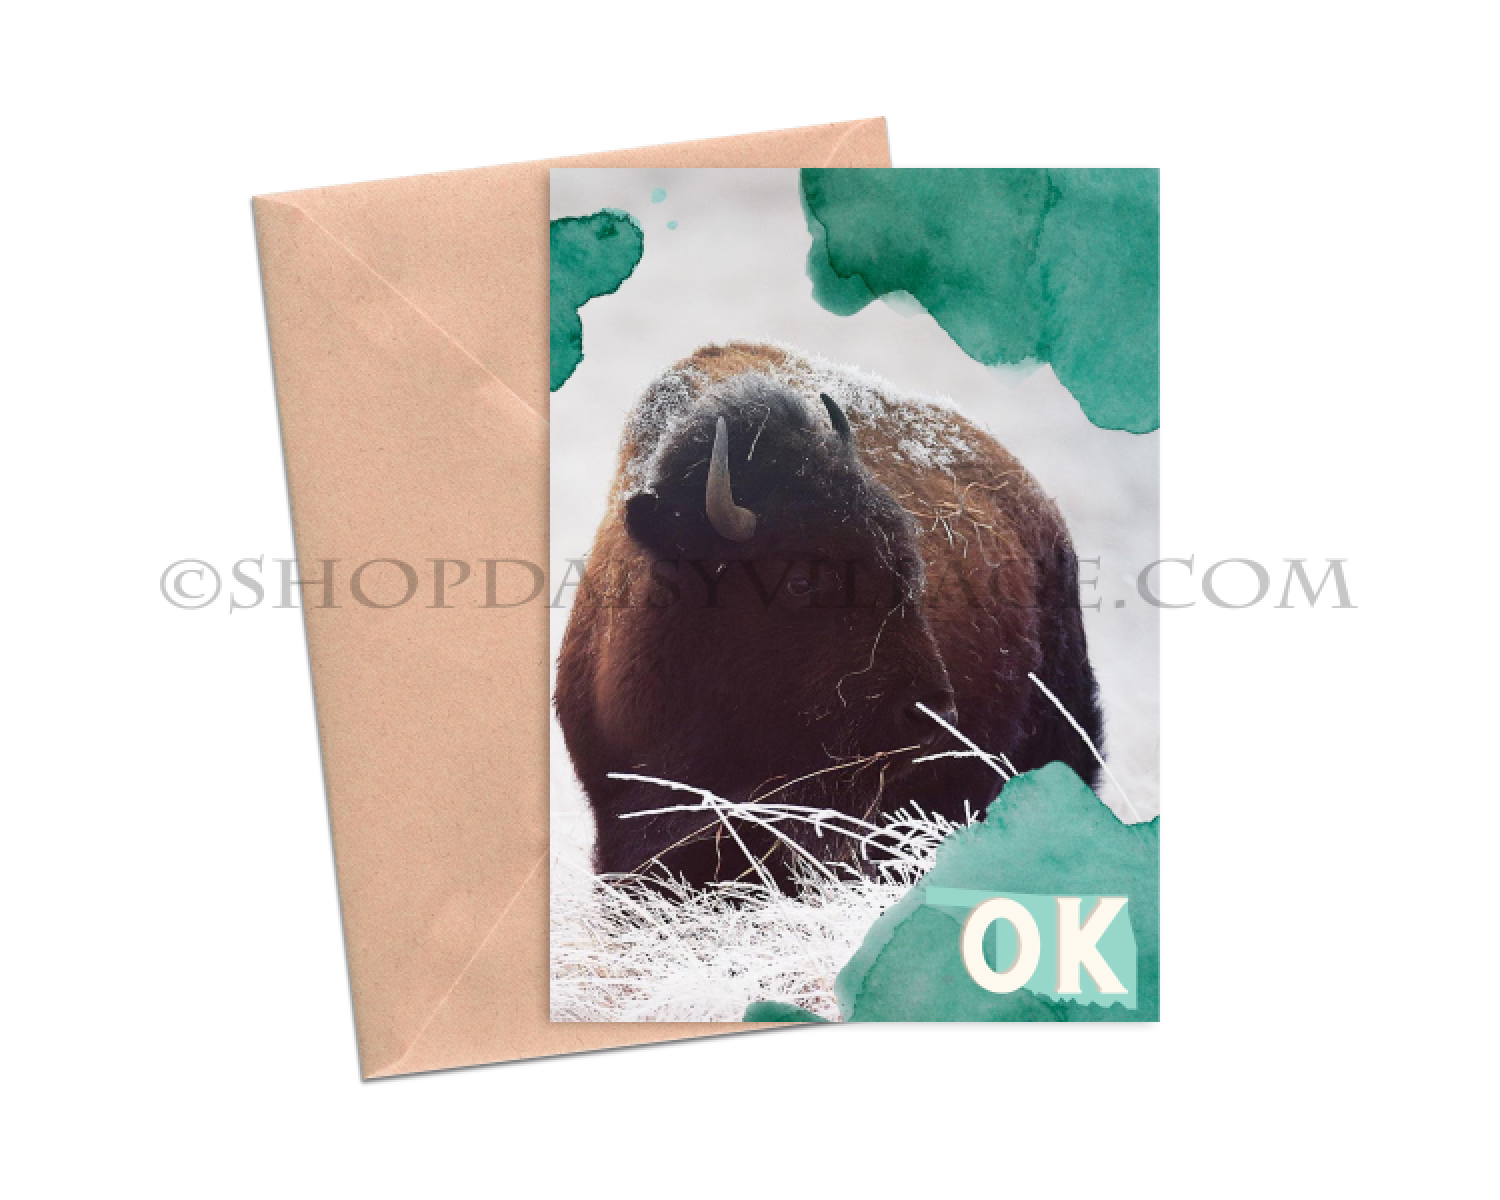 GREETINGS FROM OKLAHOMA | 5x7 GREETING CARD